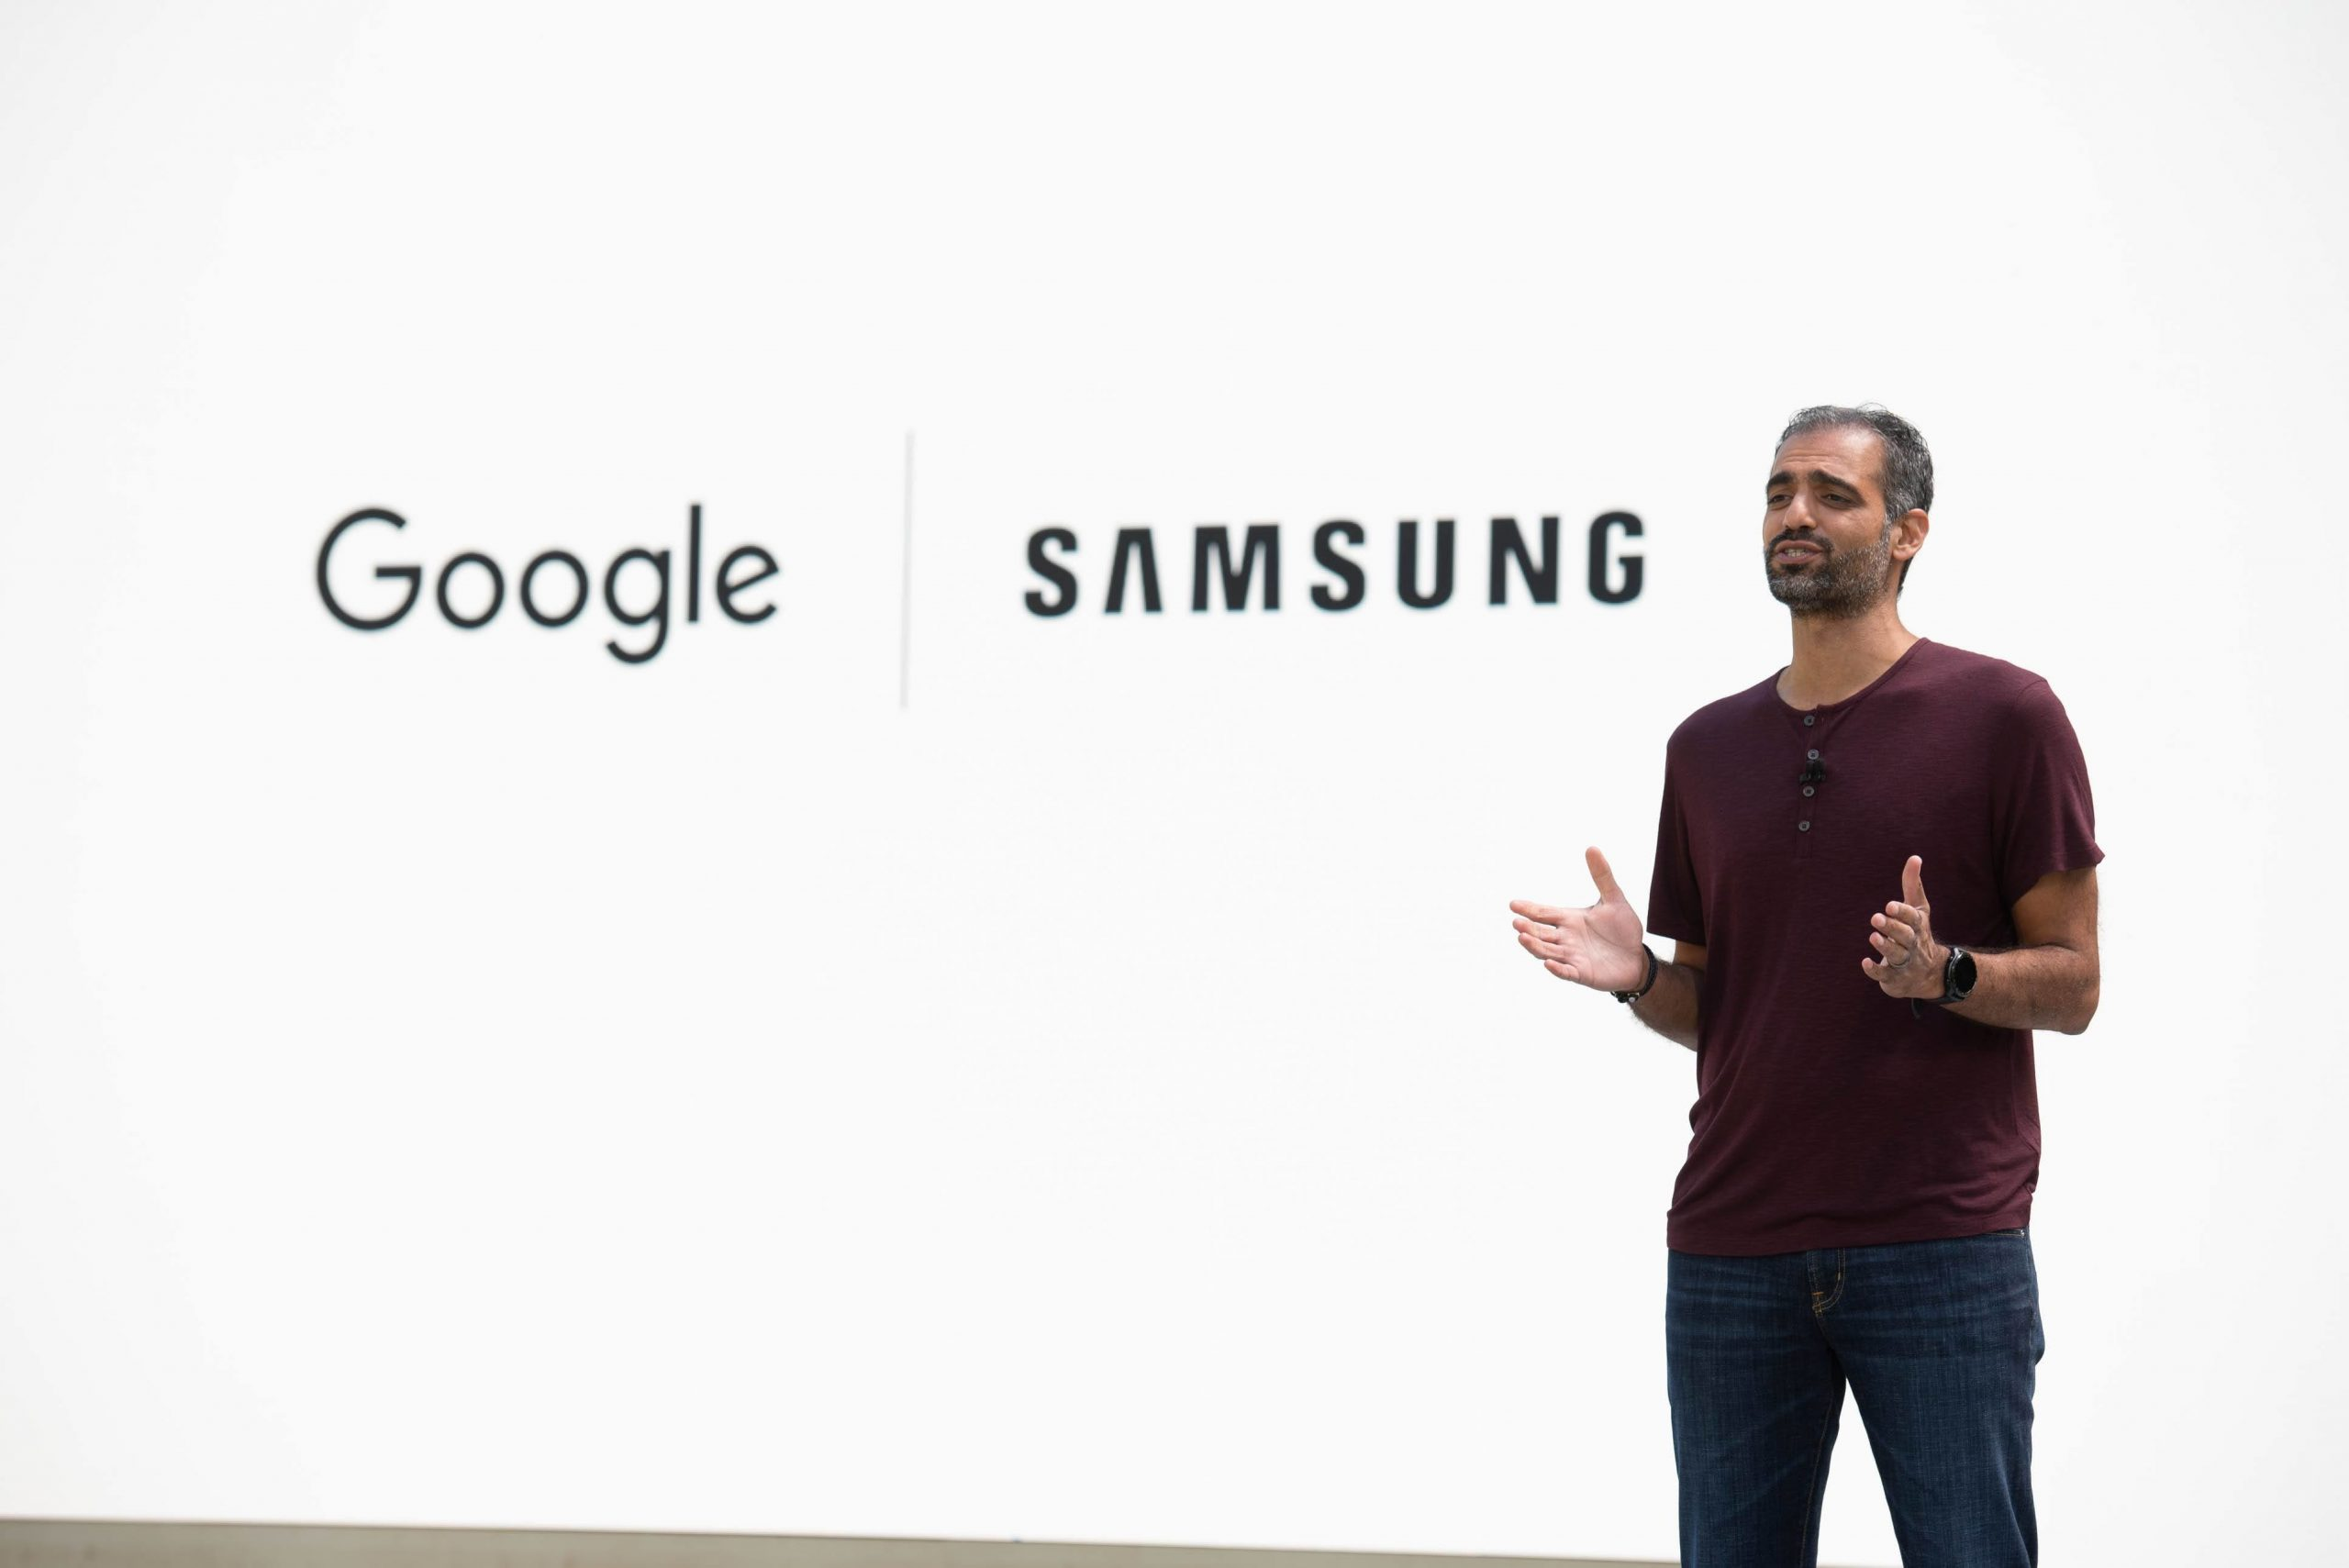 Google and Samsung together could introduce Apple Watch